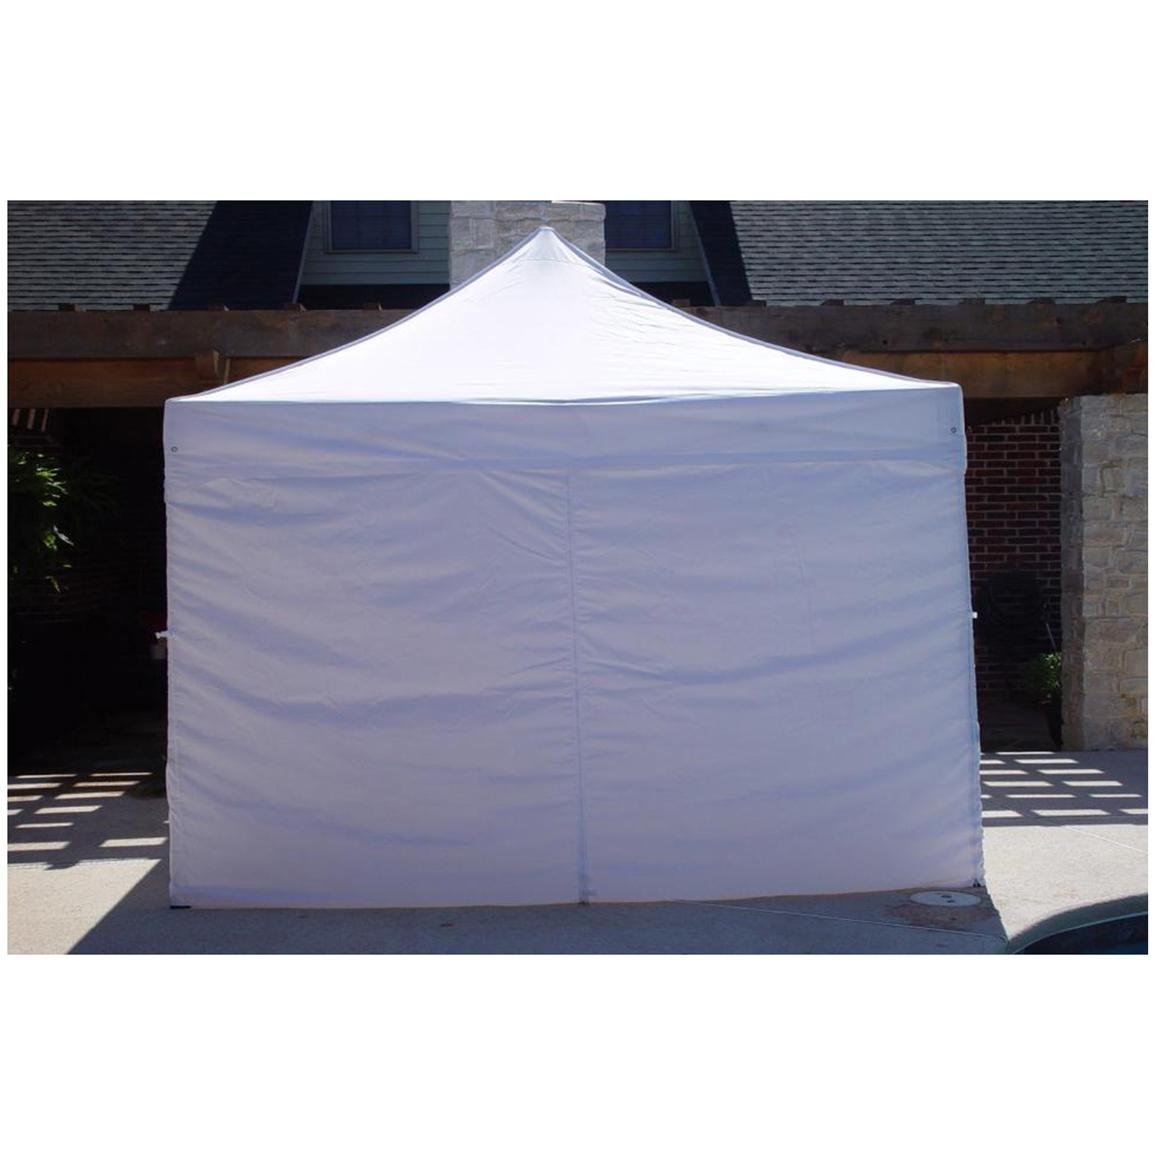 10x10 foot DuraLite Instant 4-wall Canopy by King Canopy